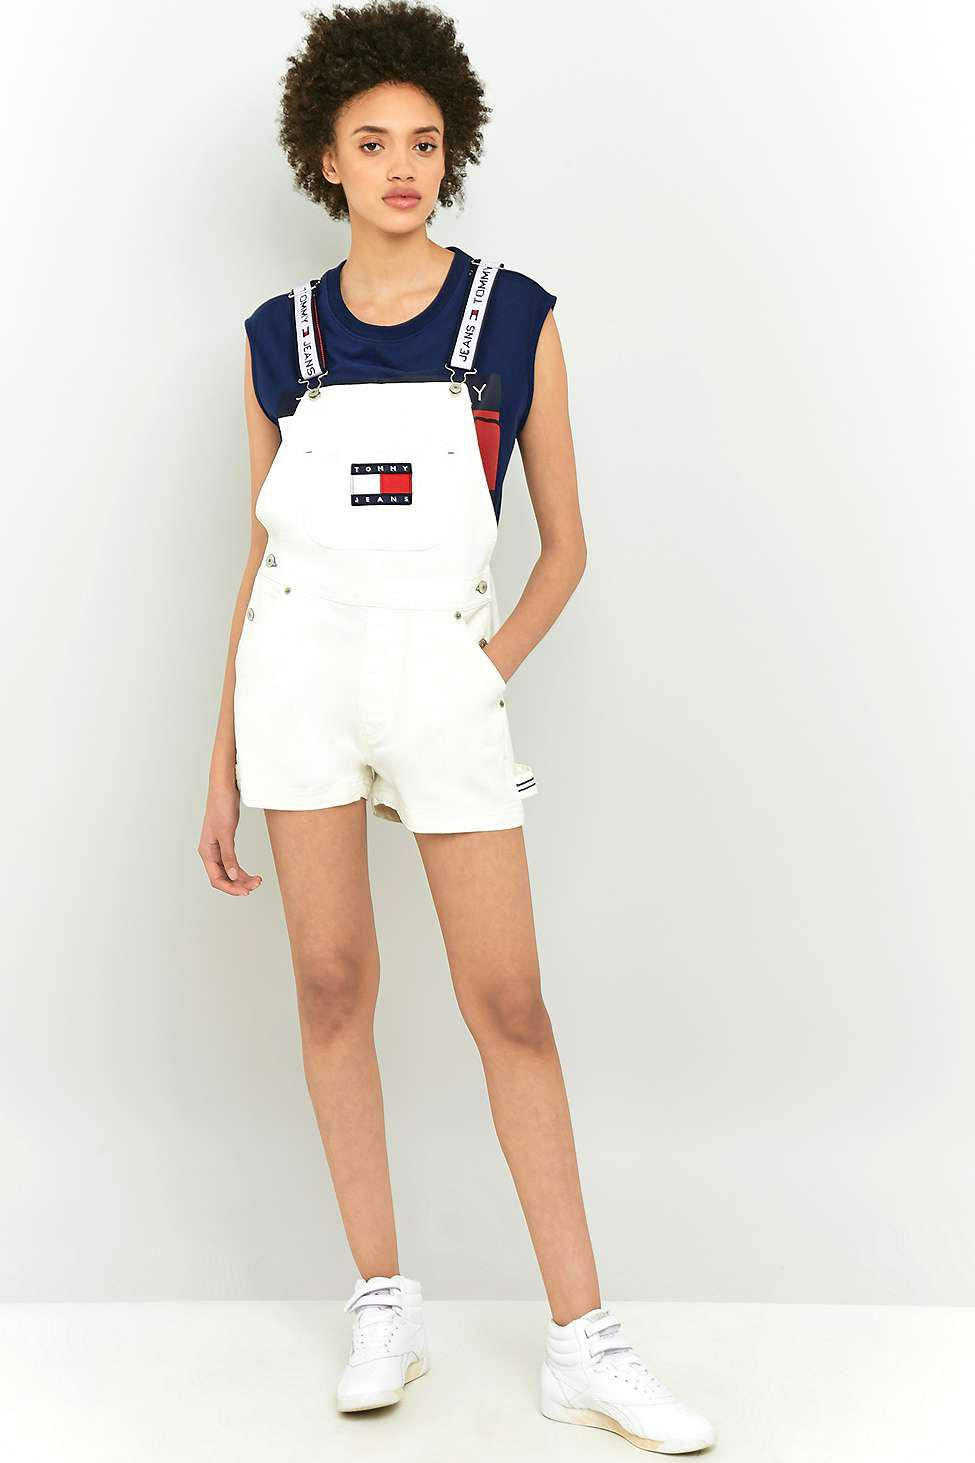 68b6ce38 Tommy Hilfiger '90s White Shorts Dungarees - Womens L in White - Lyst